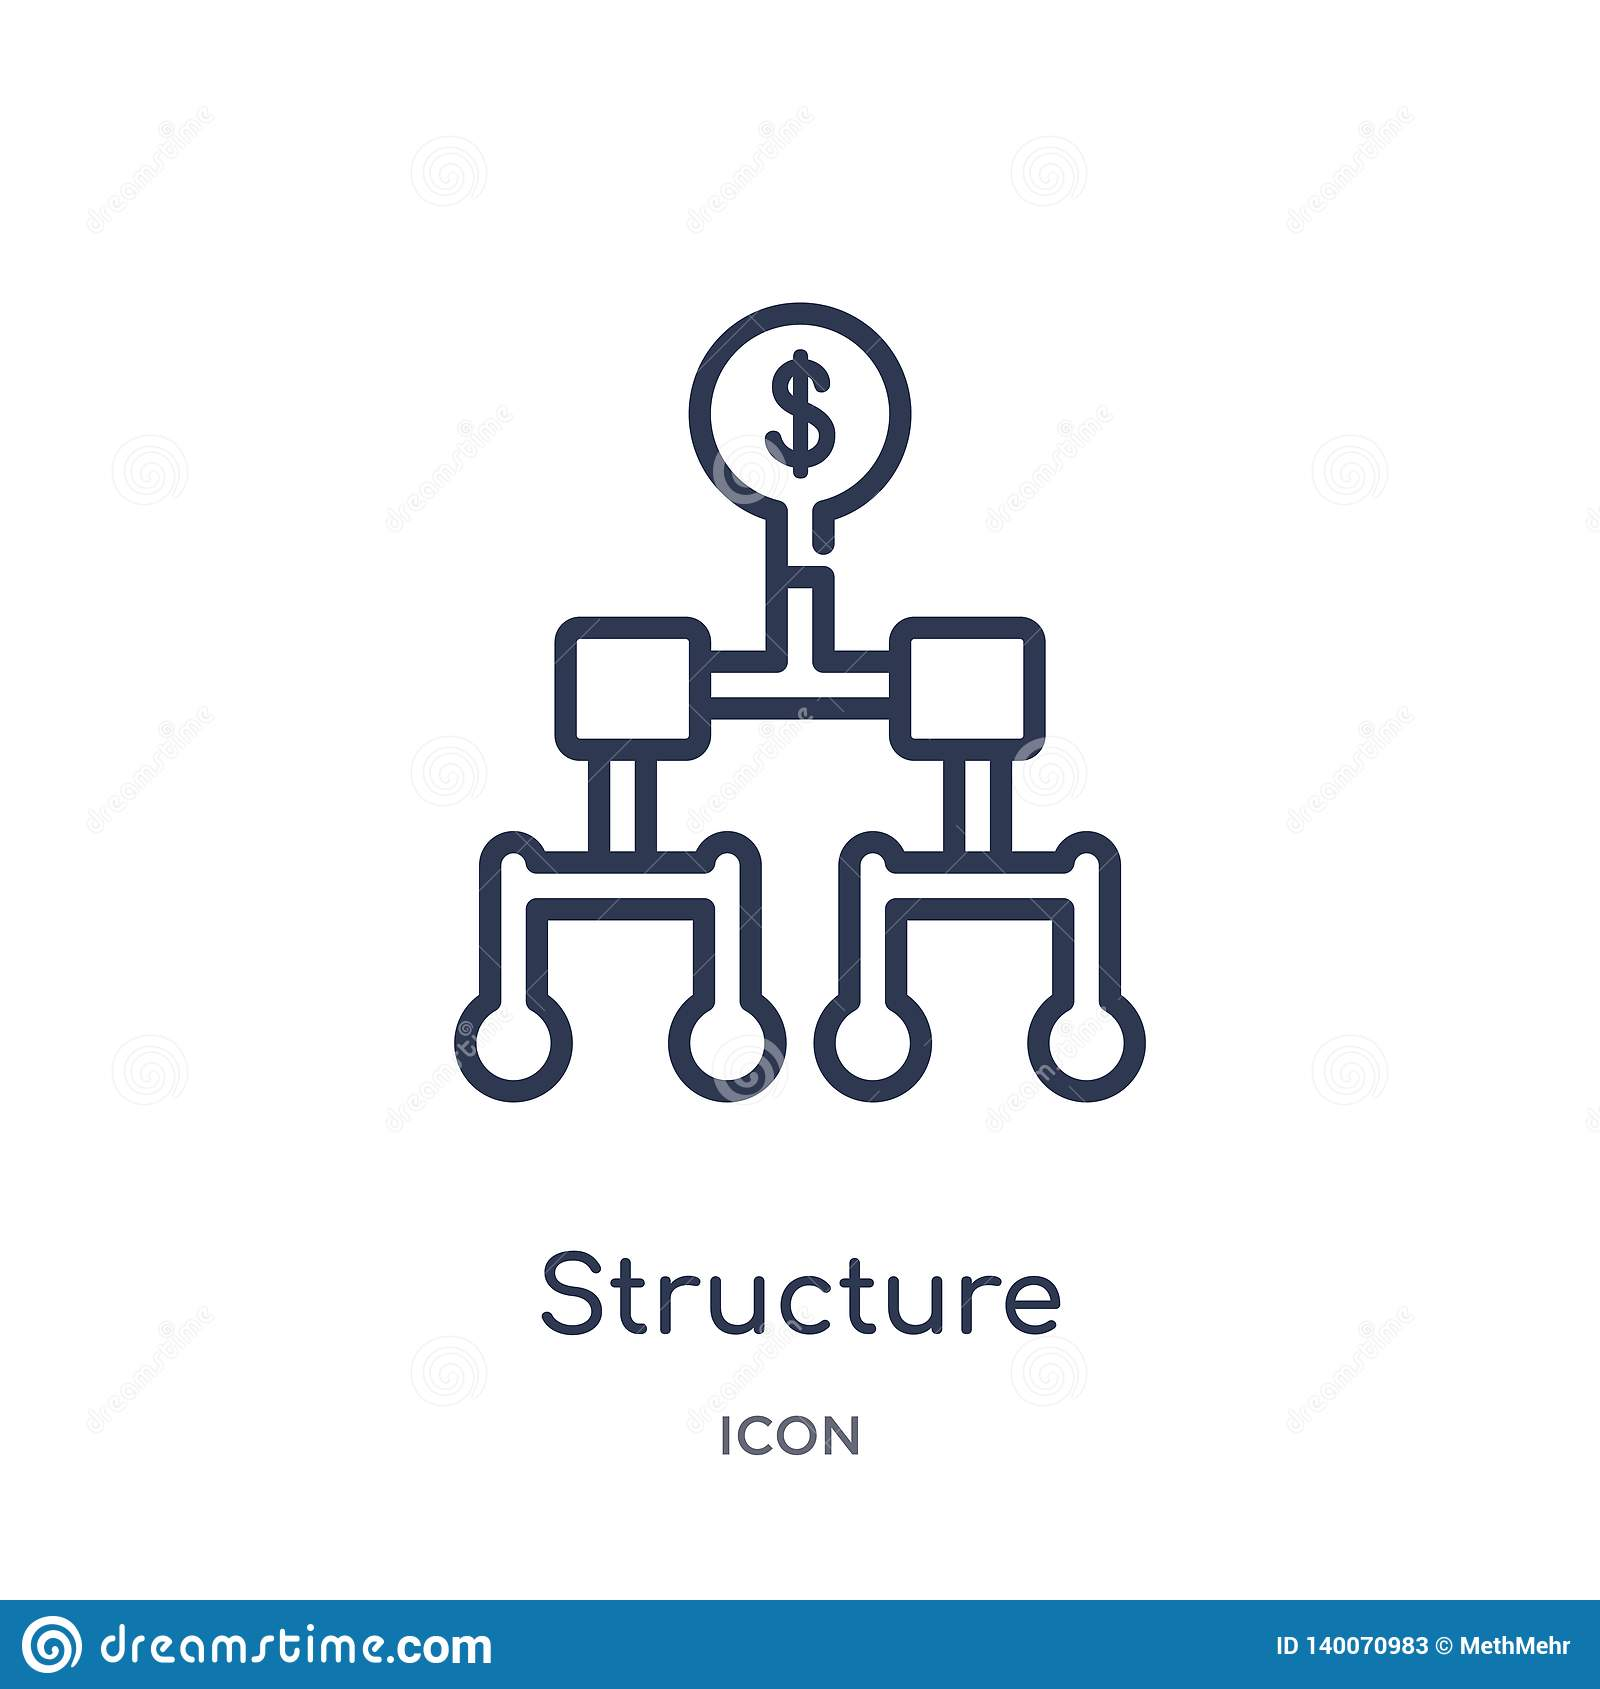 Linear structure icon from Business outline collection. Thin line structure icon isolated on white background. structure trendy